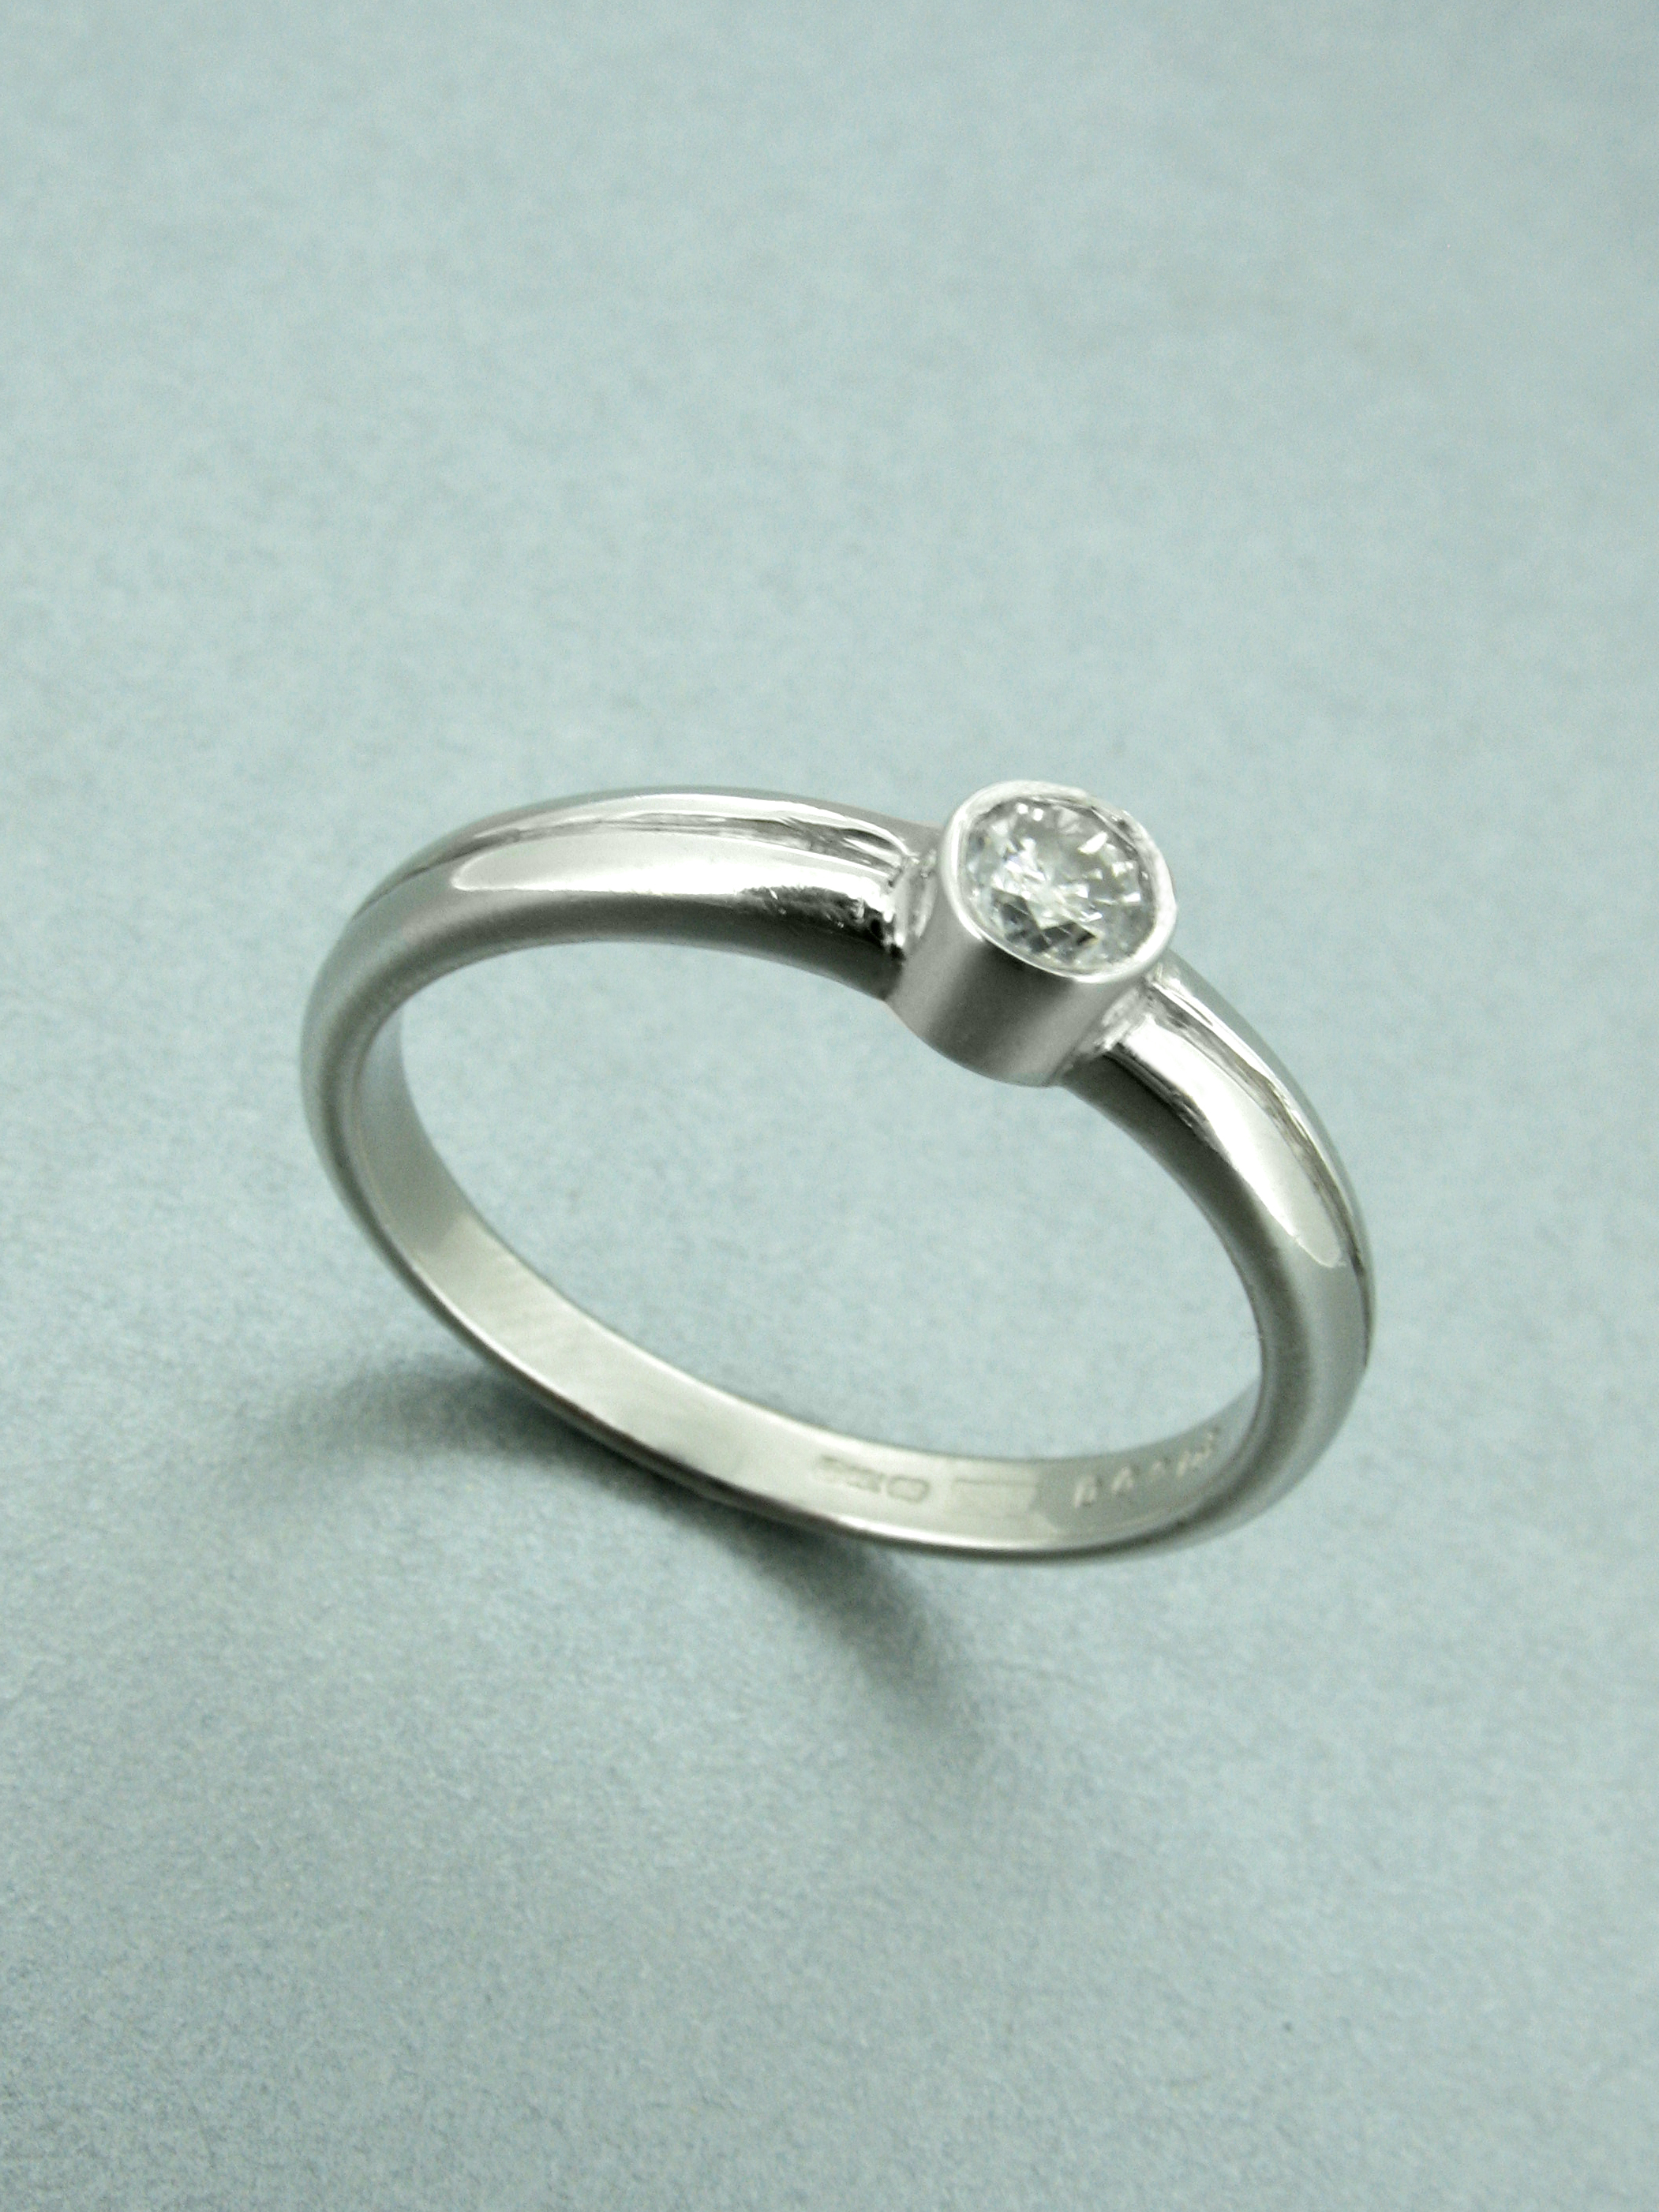 Rub-over Set Diamond Ring